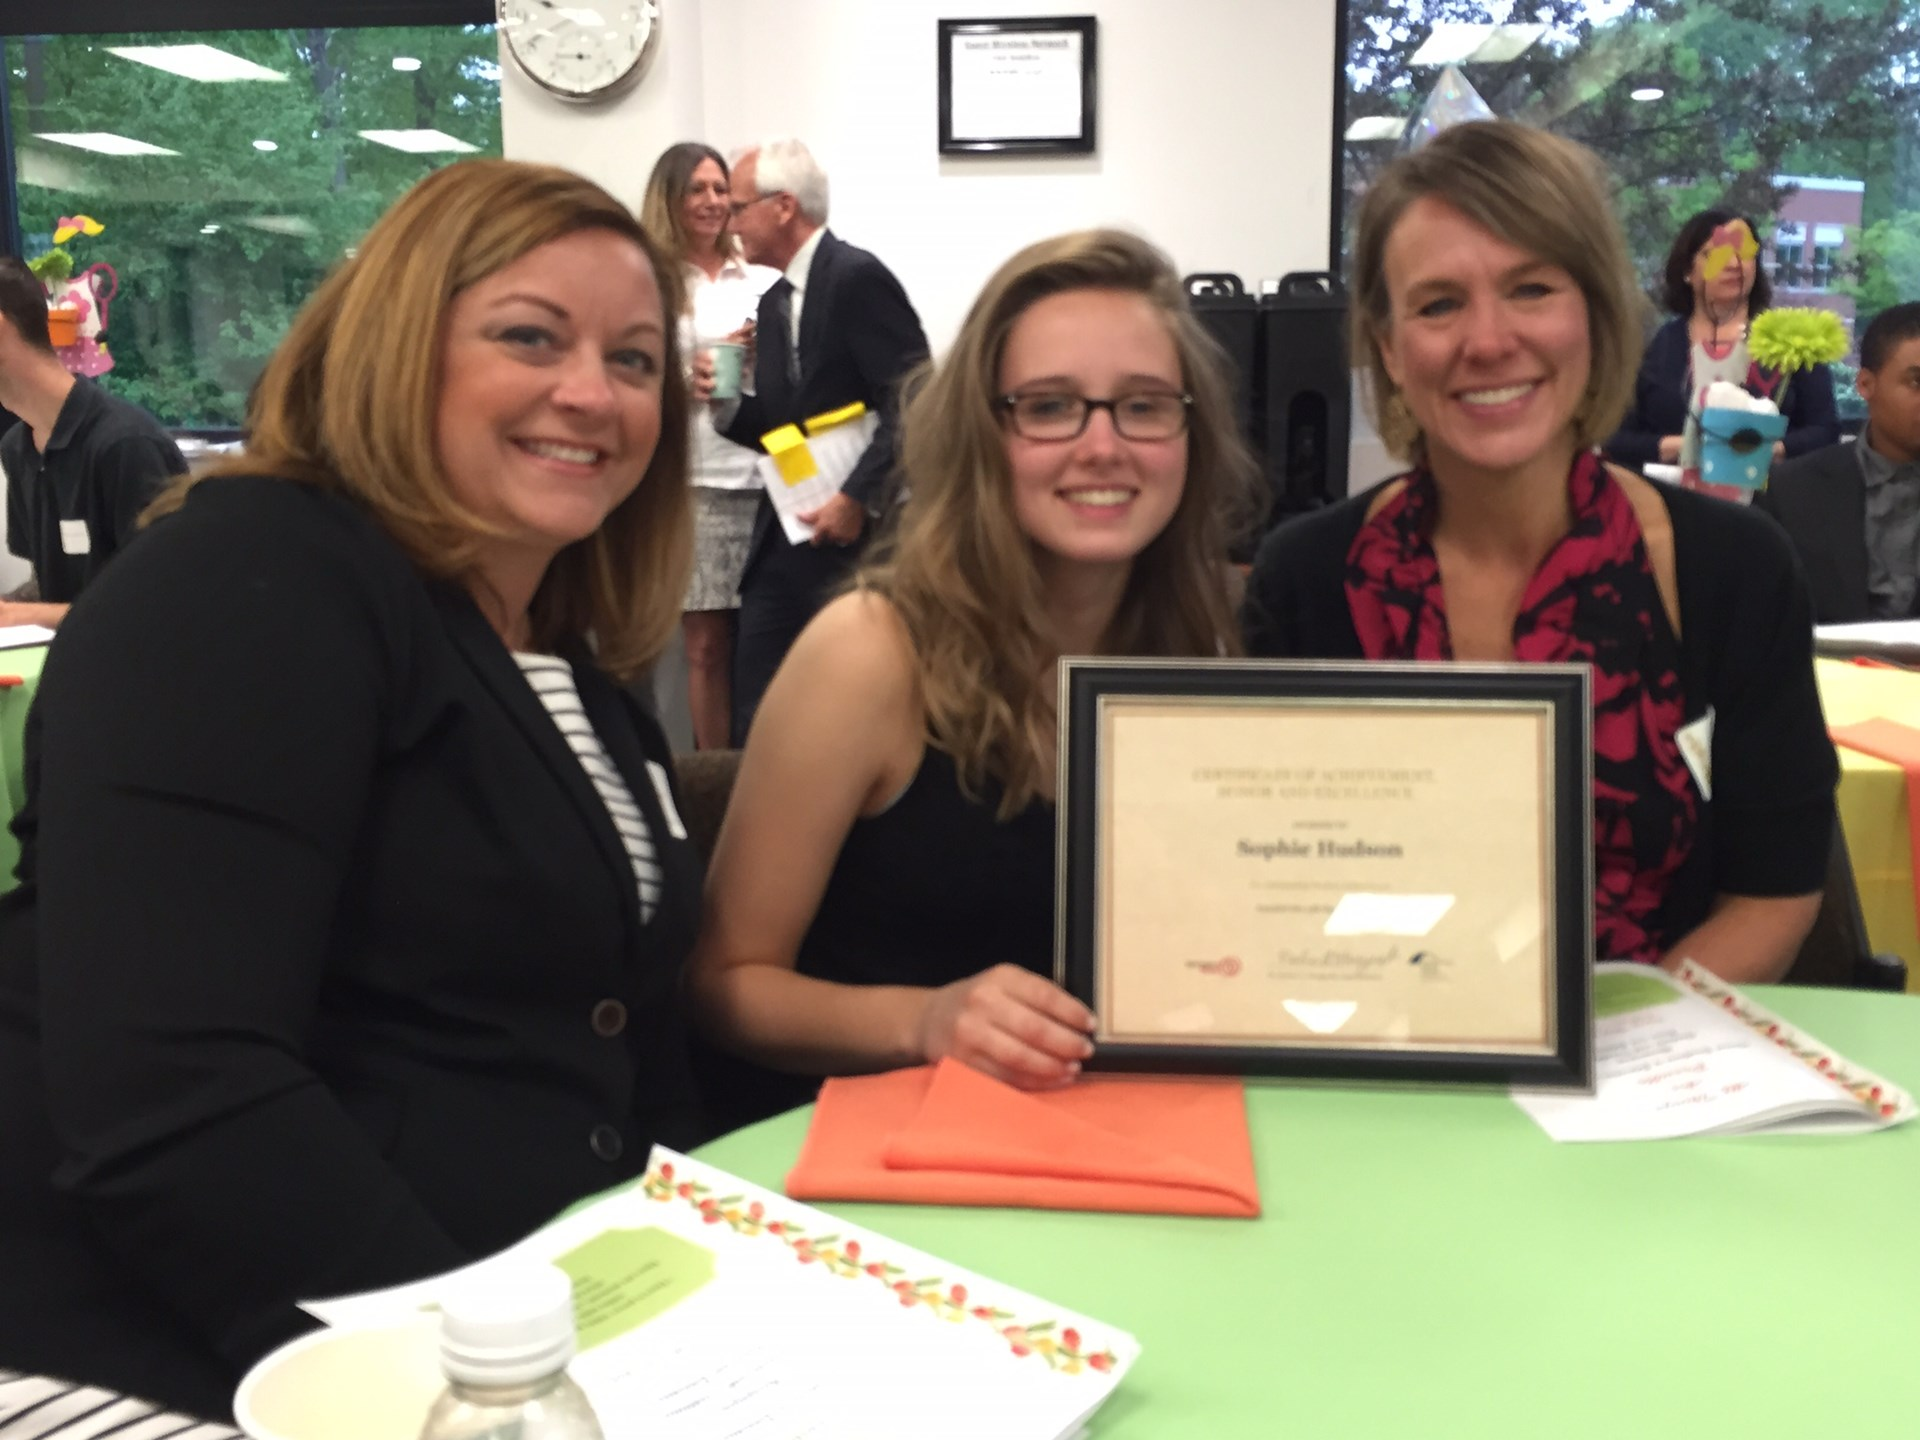 RRHS Student Sophie Honored at Excellence in Education Awards Ceremony